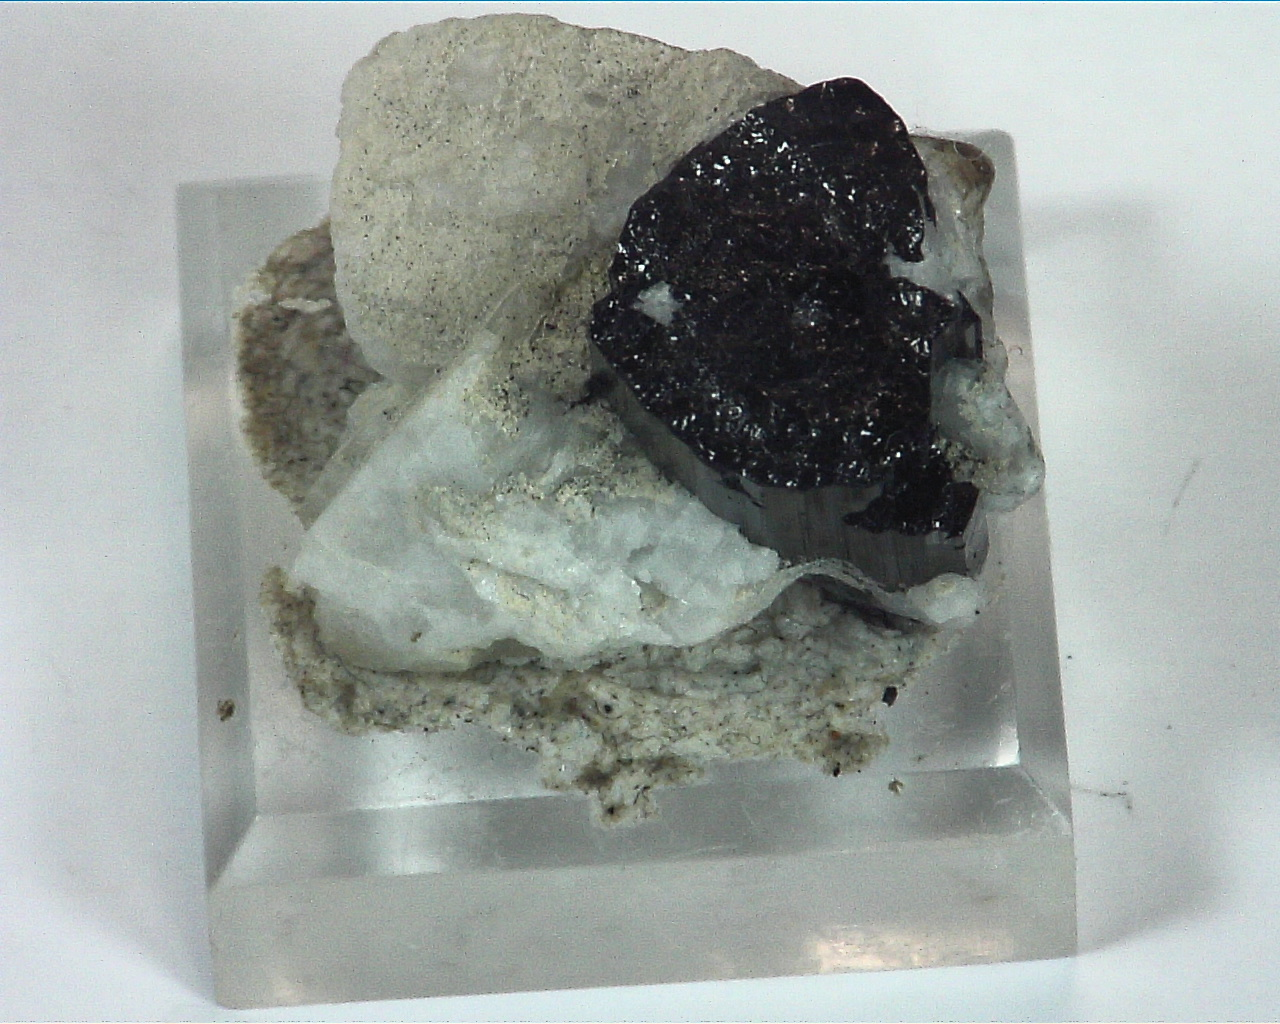 Quarts Crystal with Black Tourmaline Crystals,MS,786